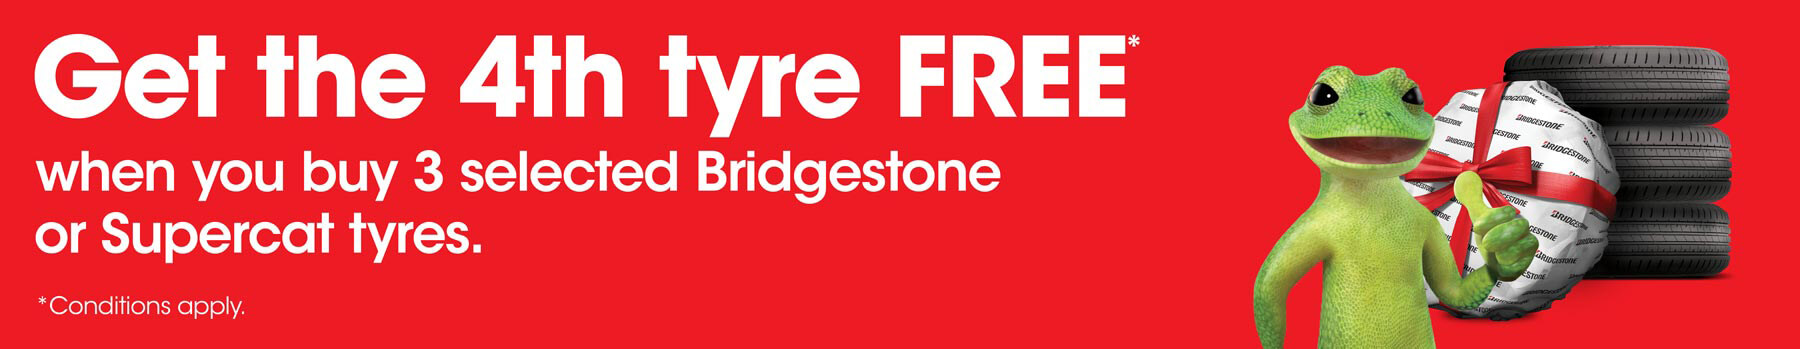 June Promotion - Get the 4th Tyre Free*